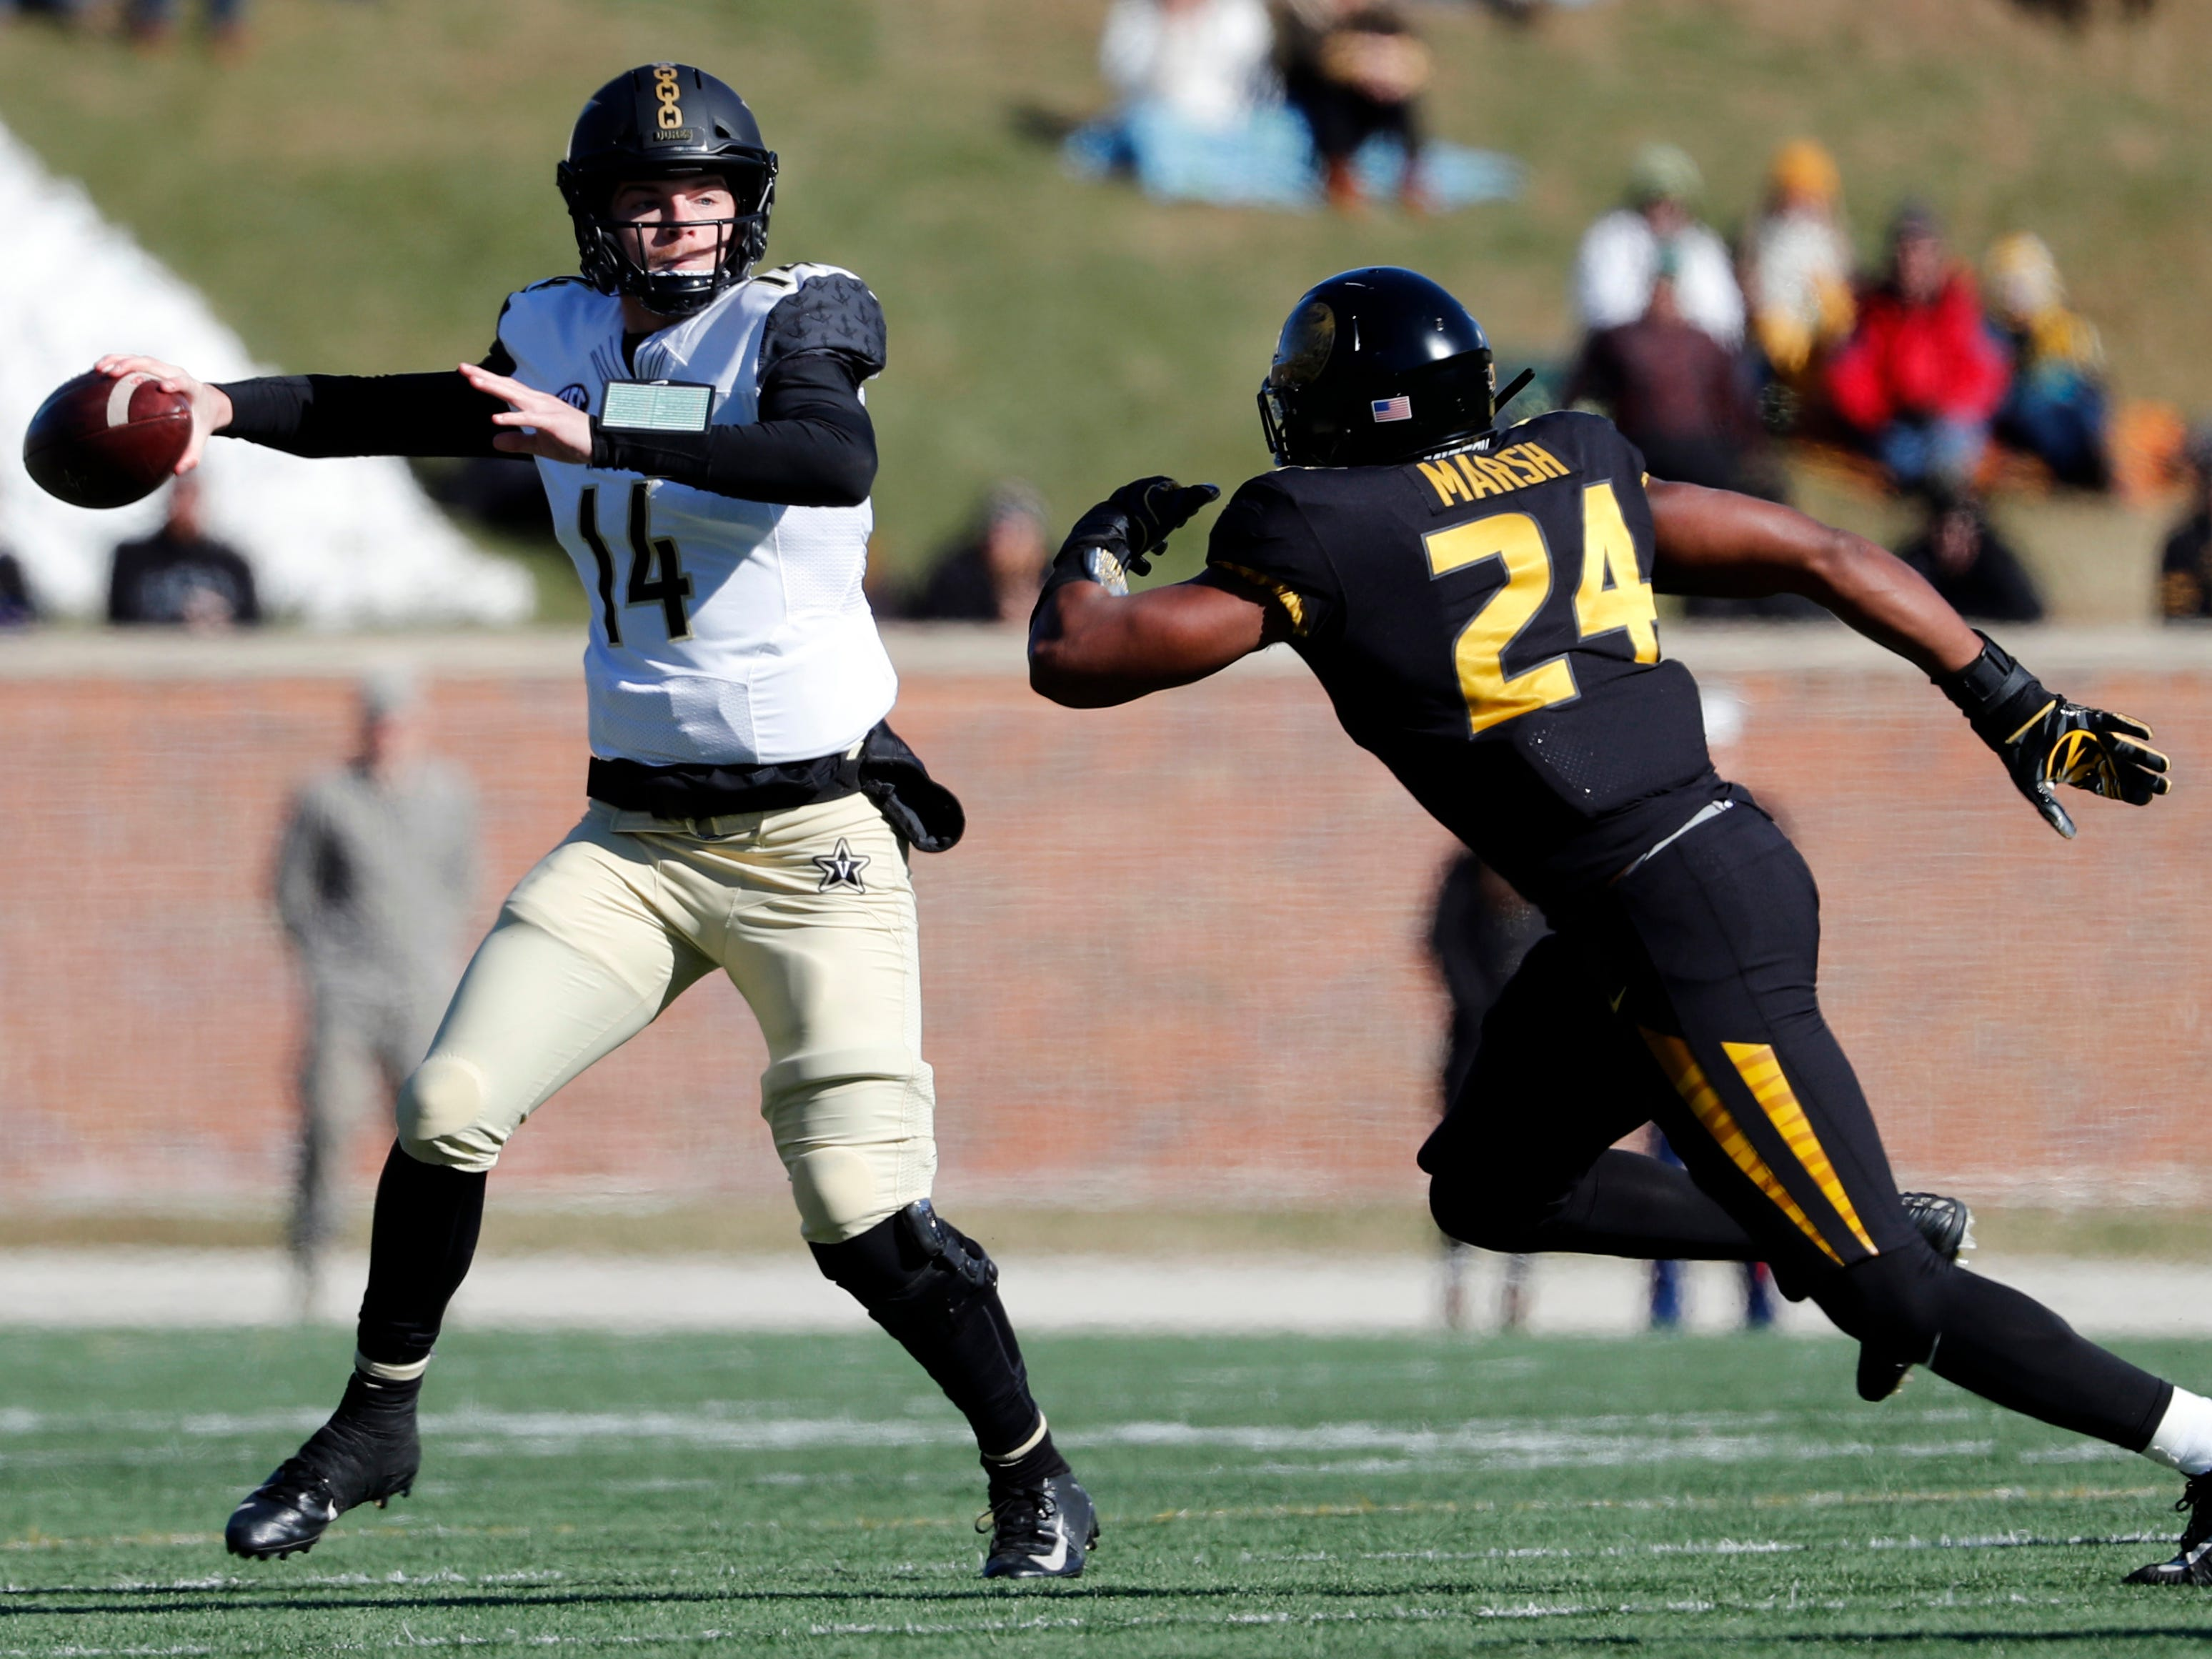 Vanderbilt quarterback Kyle Shurmur, left, throws under pressure from Missouri linebacker Terez Hall during the first half of an NCAA college football game Saturday, Nov. 10, 2018, in Columbia, Mo.